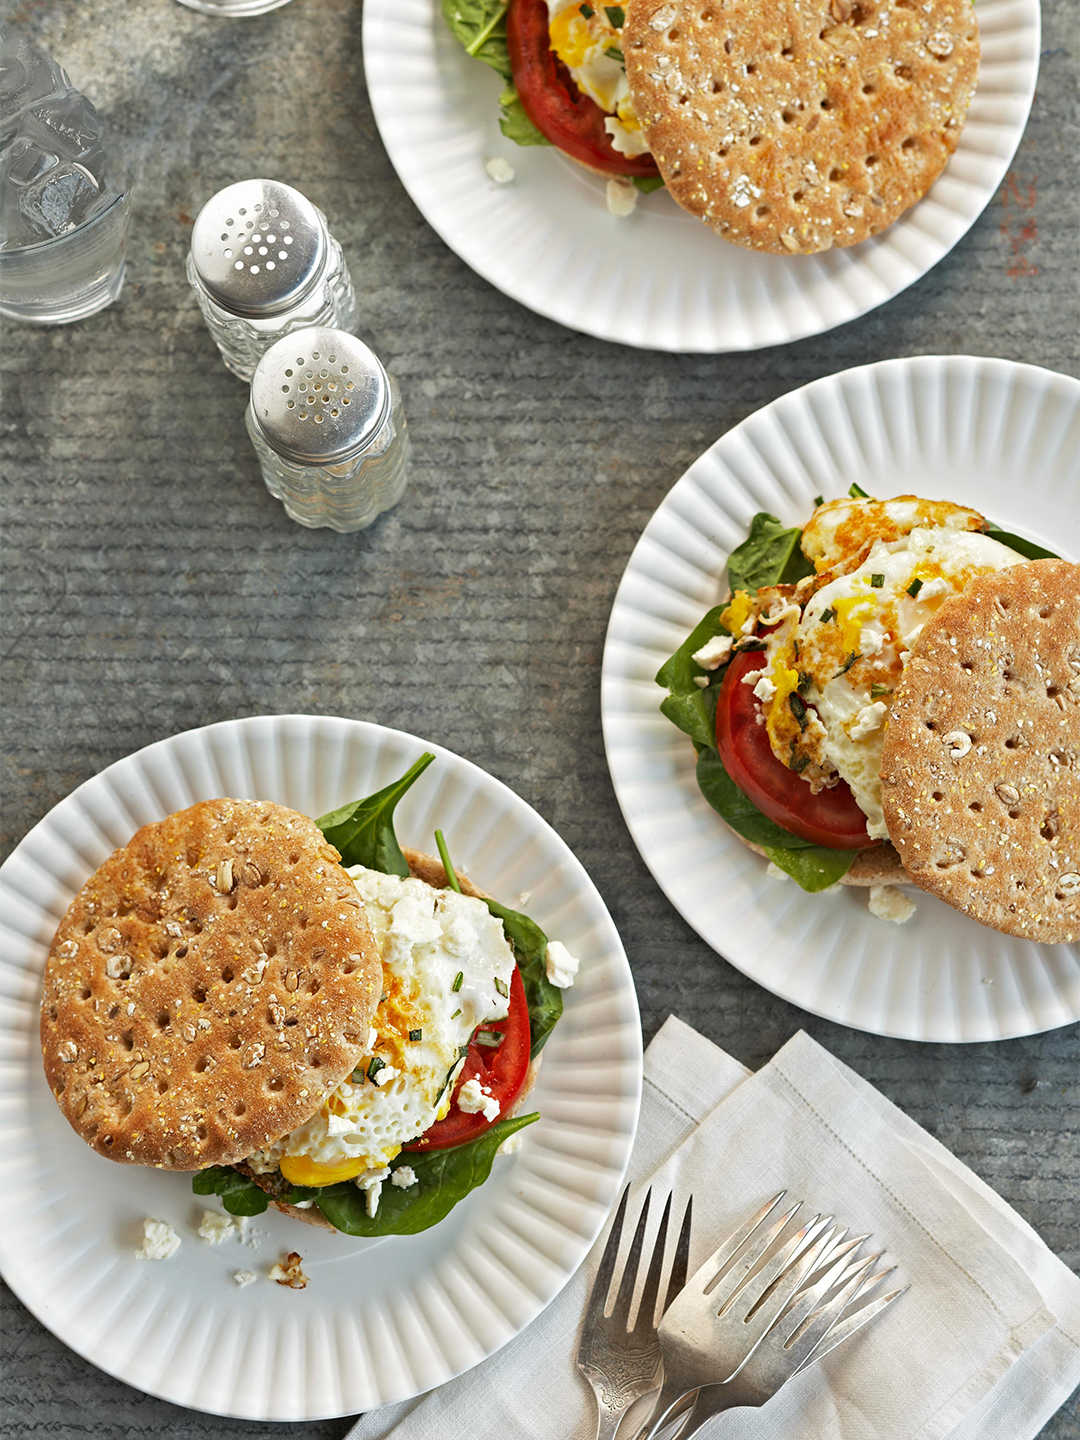 Mediterranean Breakfast Sandwiches with spinach, egg, and tomato